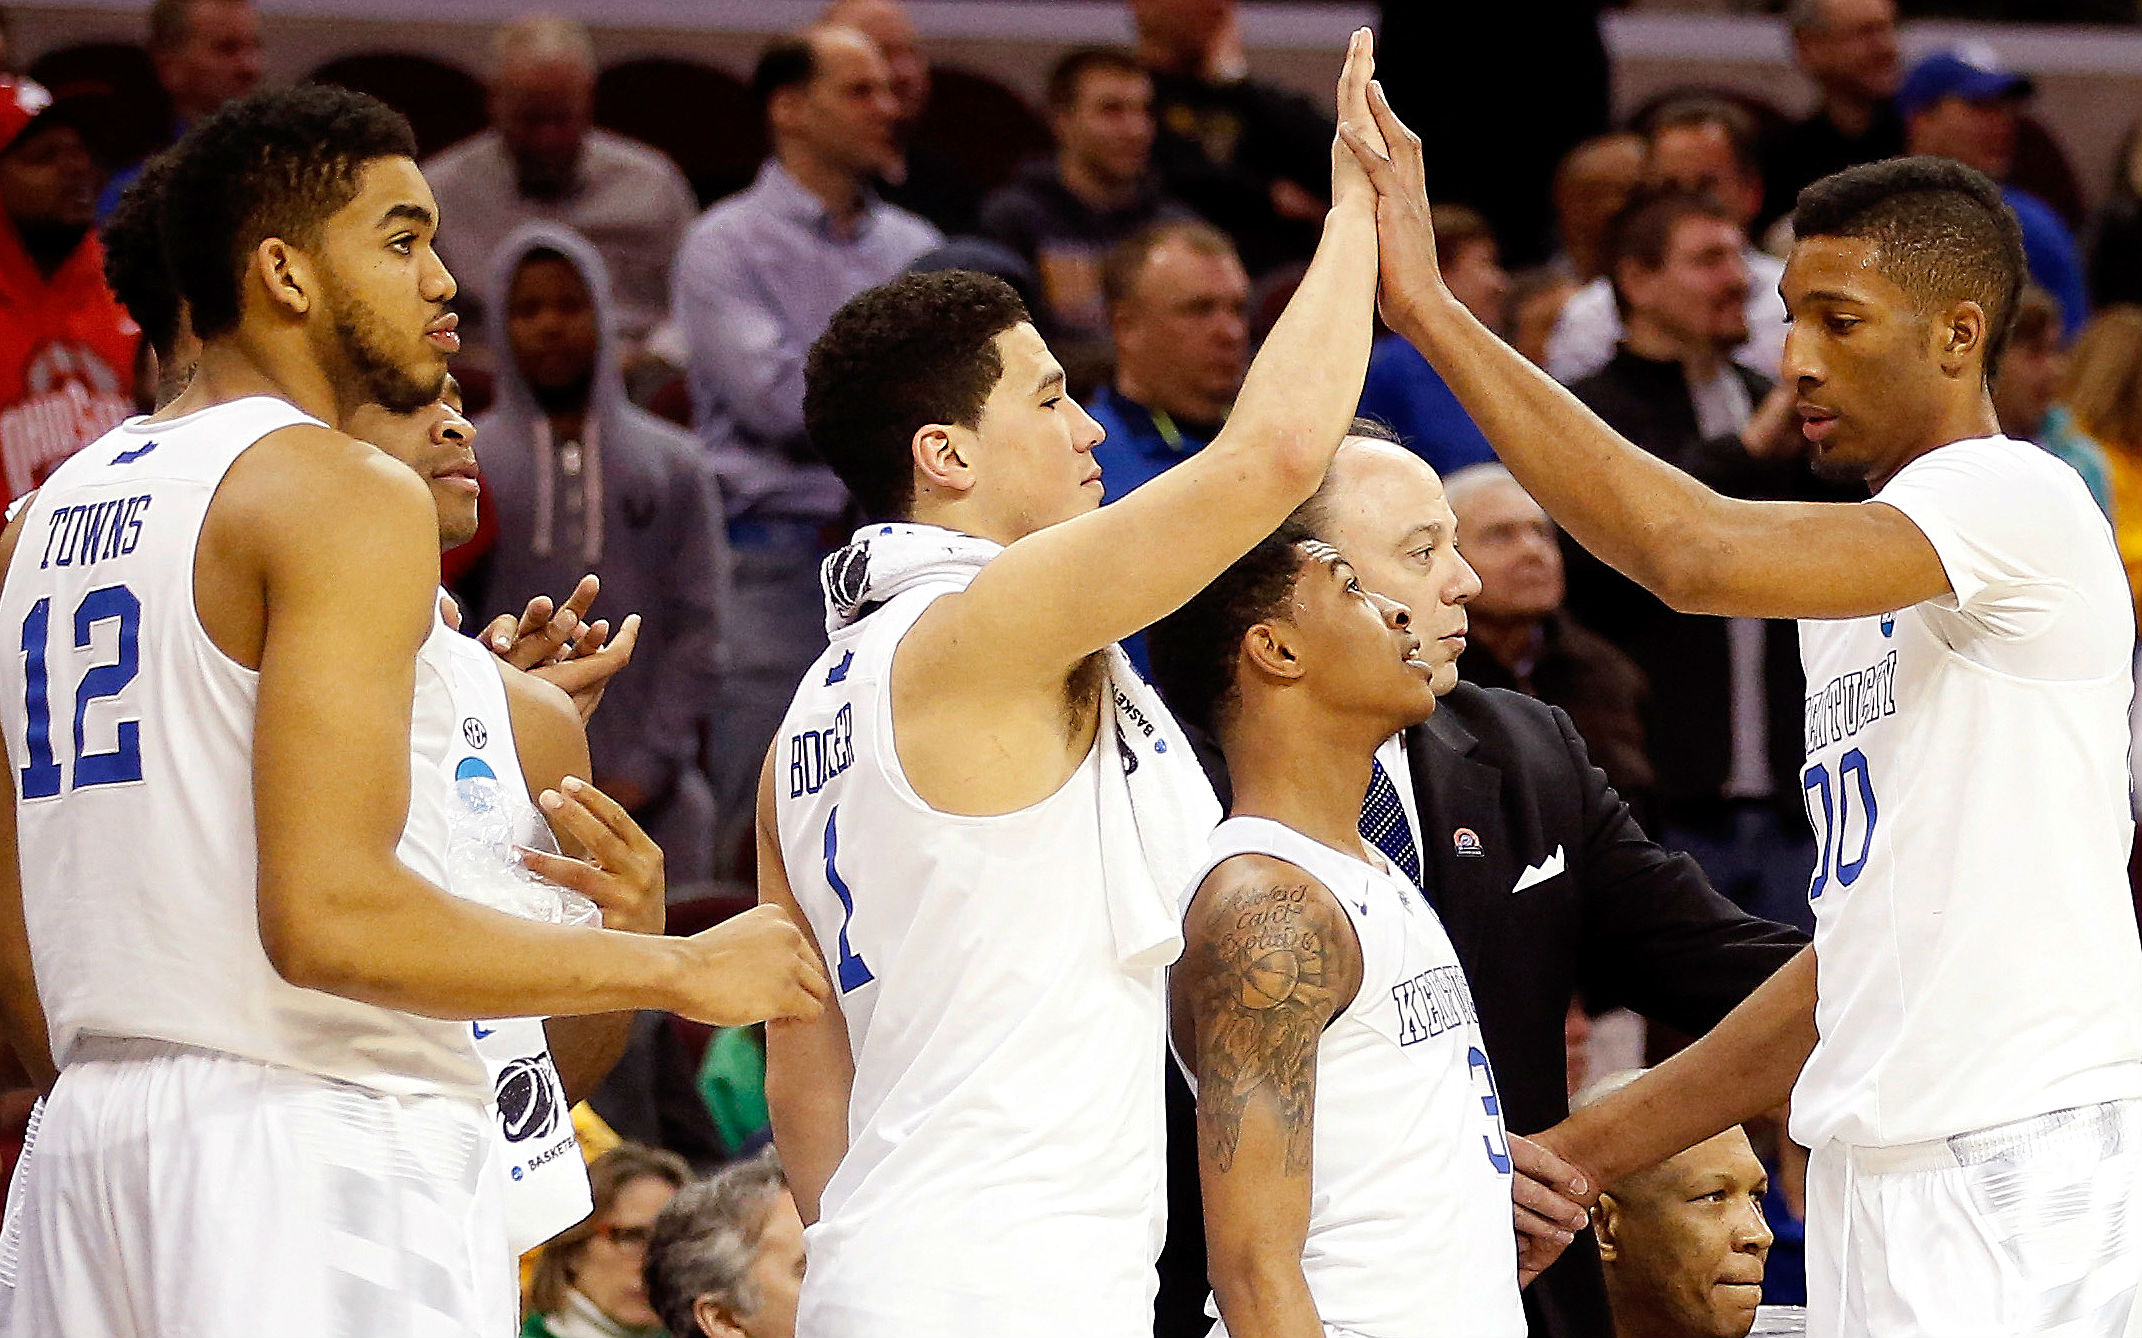 Elite Eight betting lines – Kentucky back as double-digit favorite vs. Notre Dame